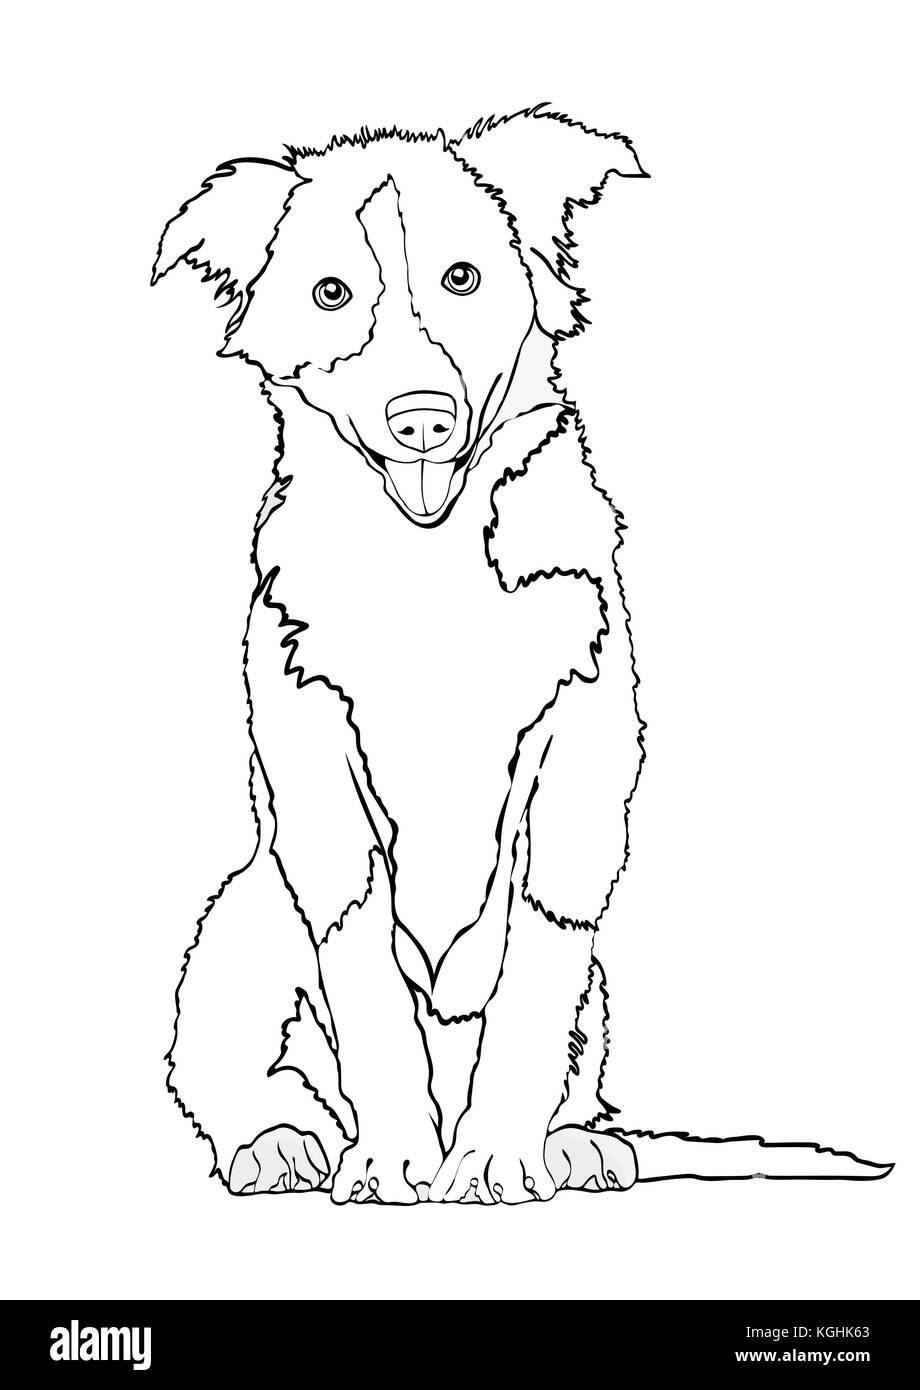 Dog vector outline drawing sketch coloring book black and white contour cartoon shaggy dog full length isolated on white